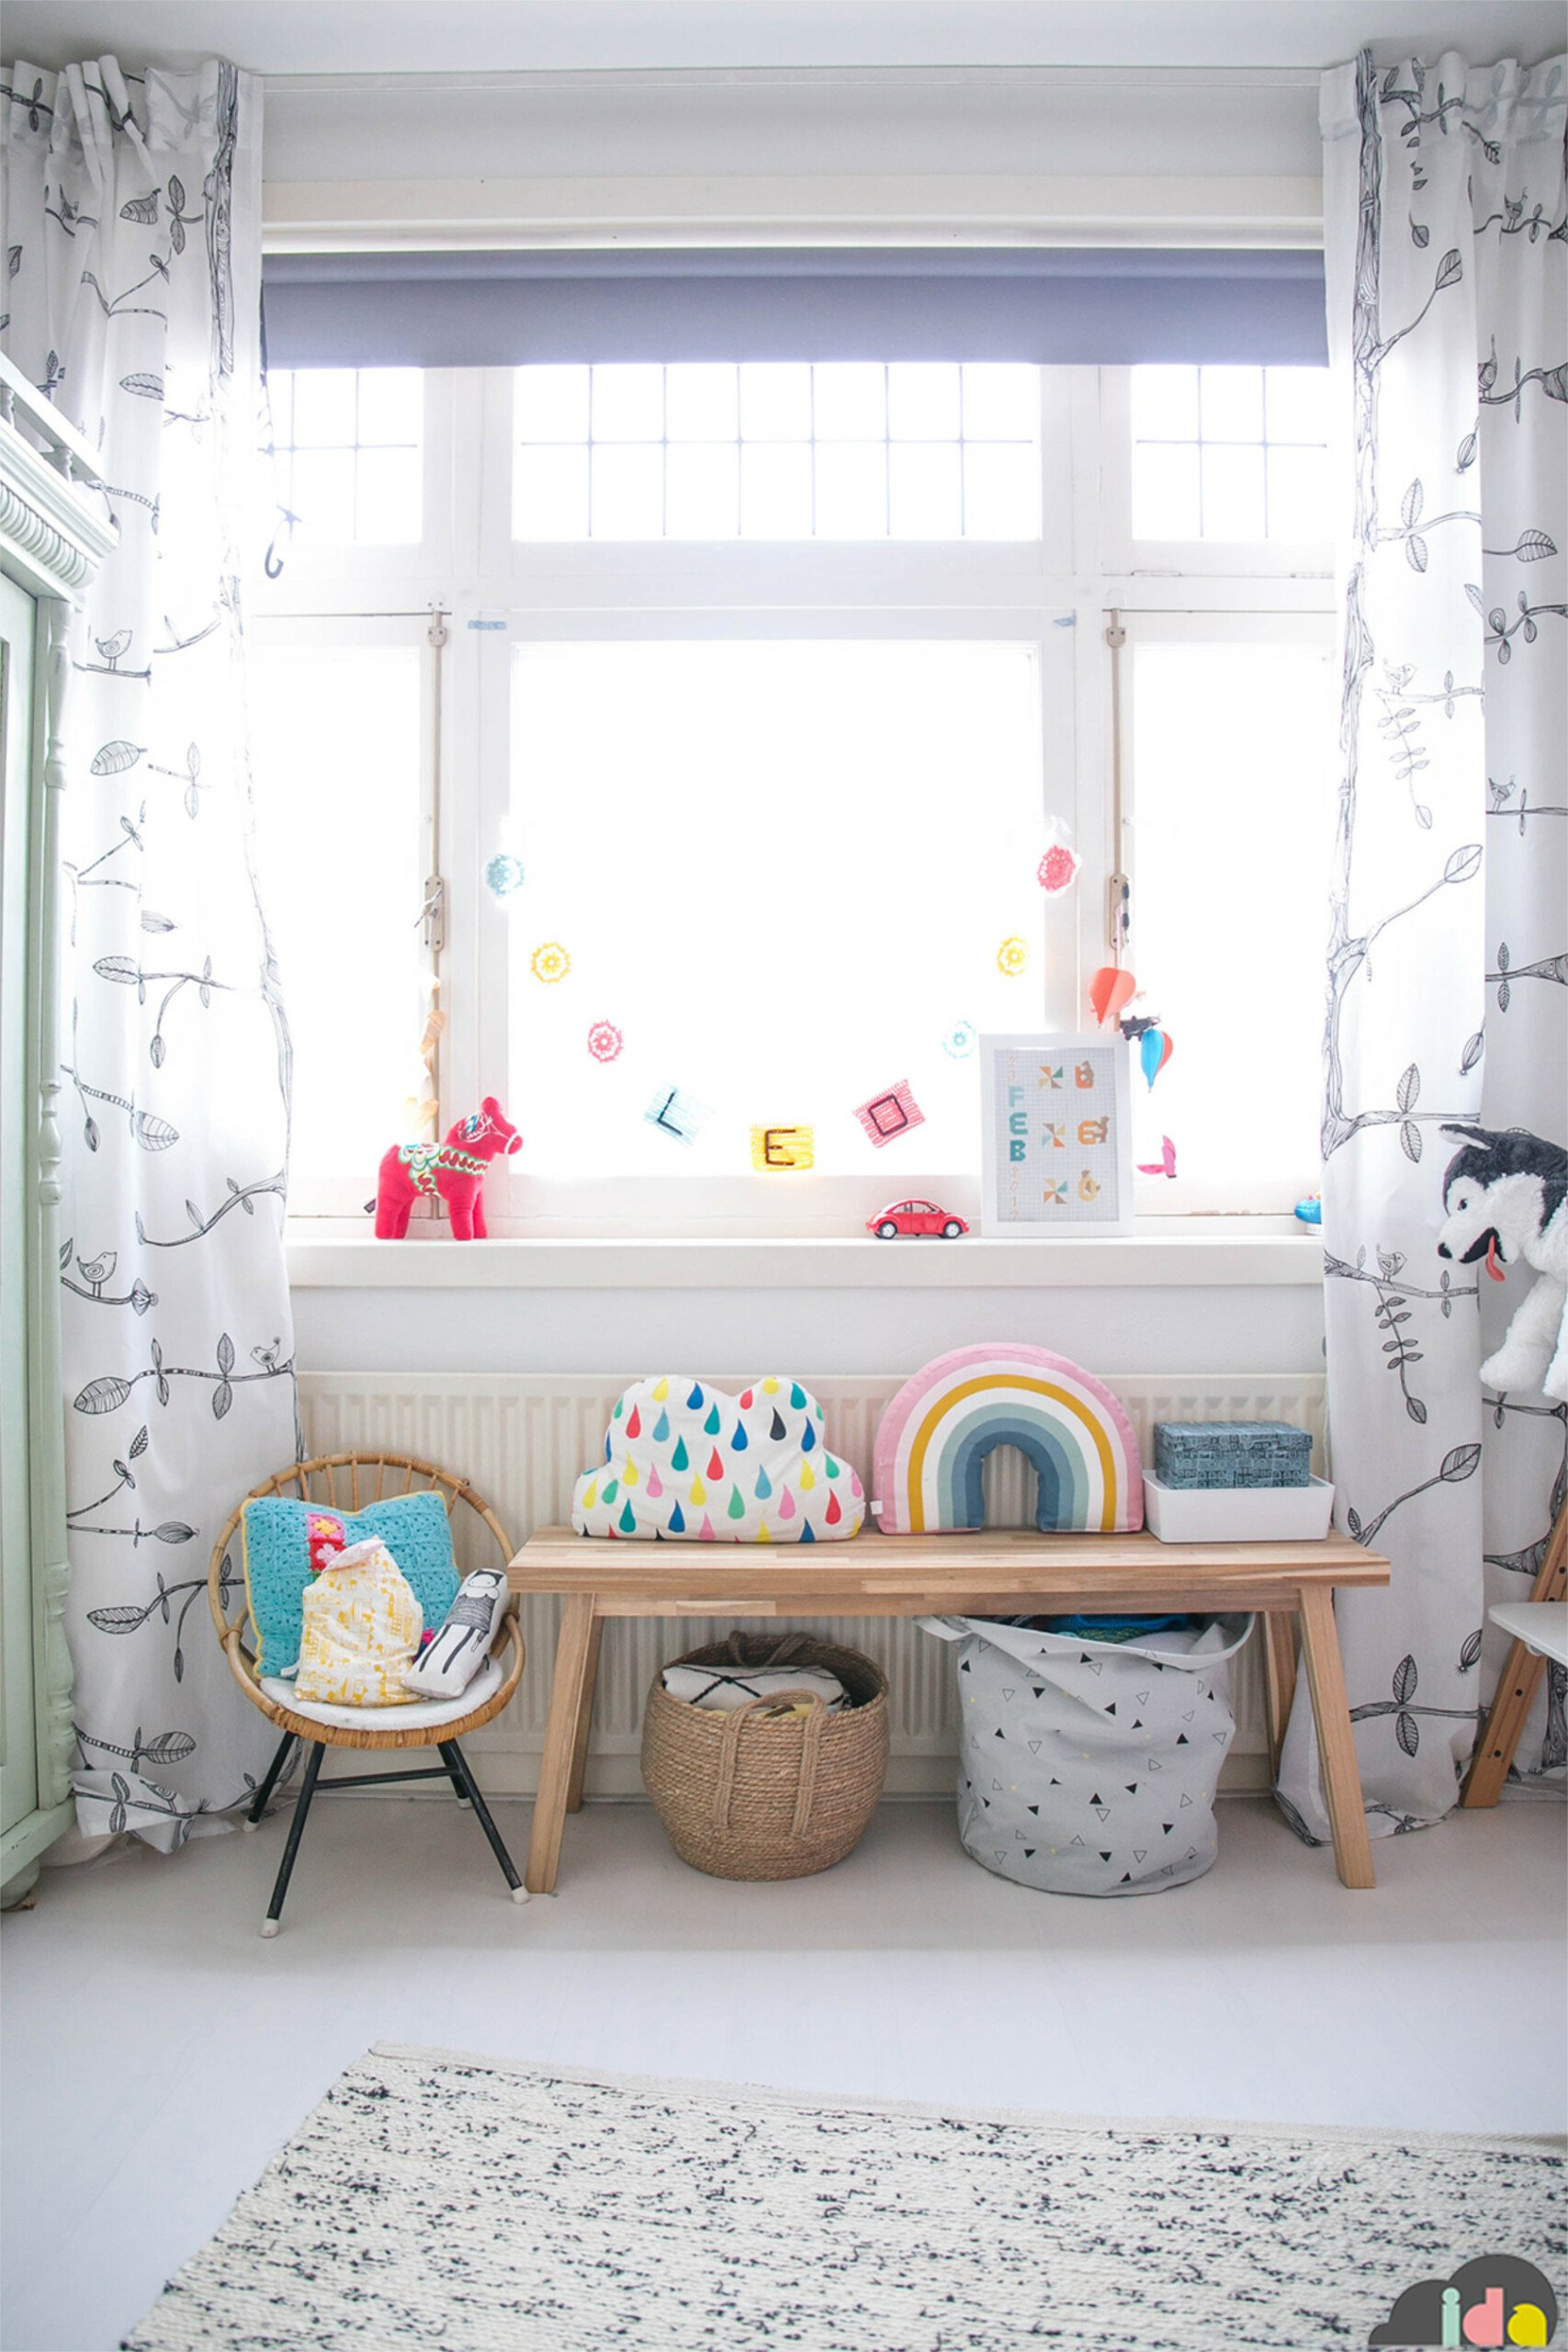 IDAinteriorlifestyle 9 kids room colourful home scaled